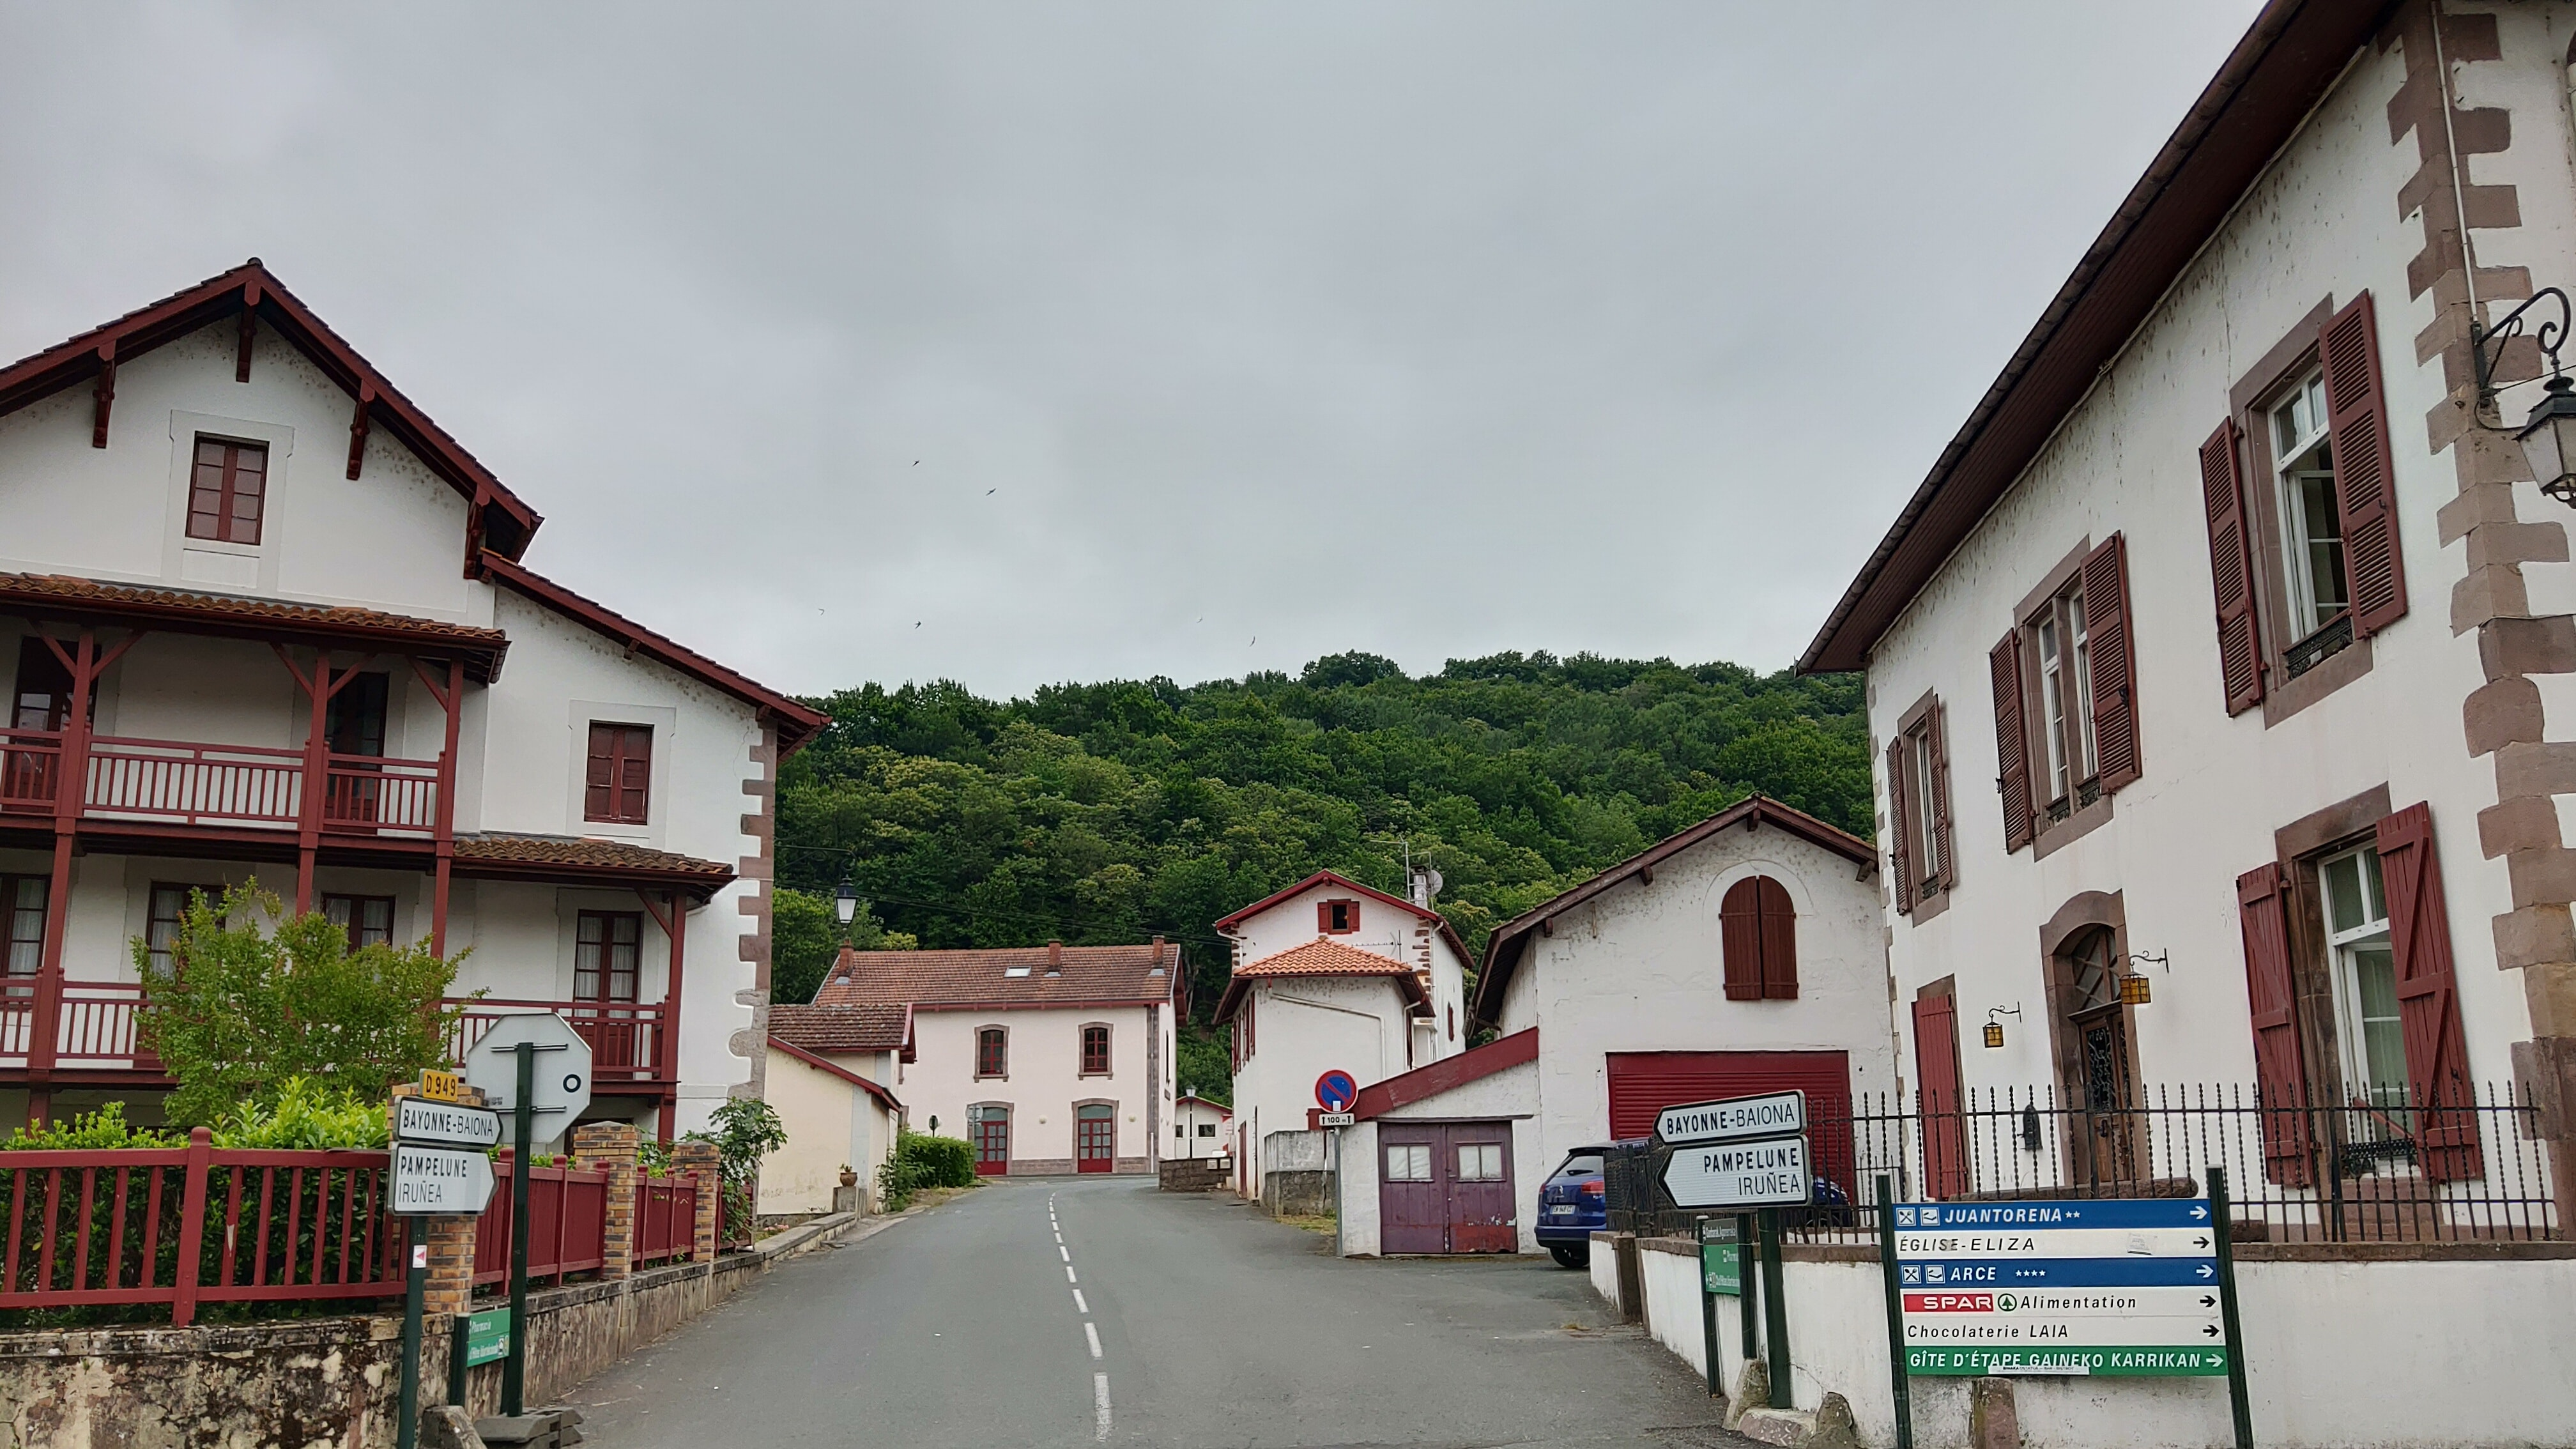 French Basque buildings